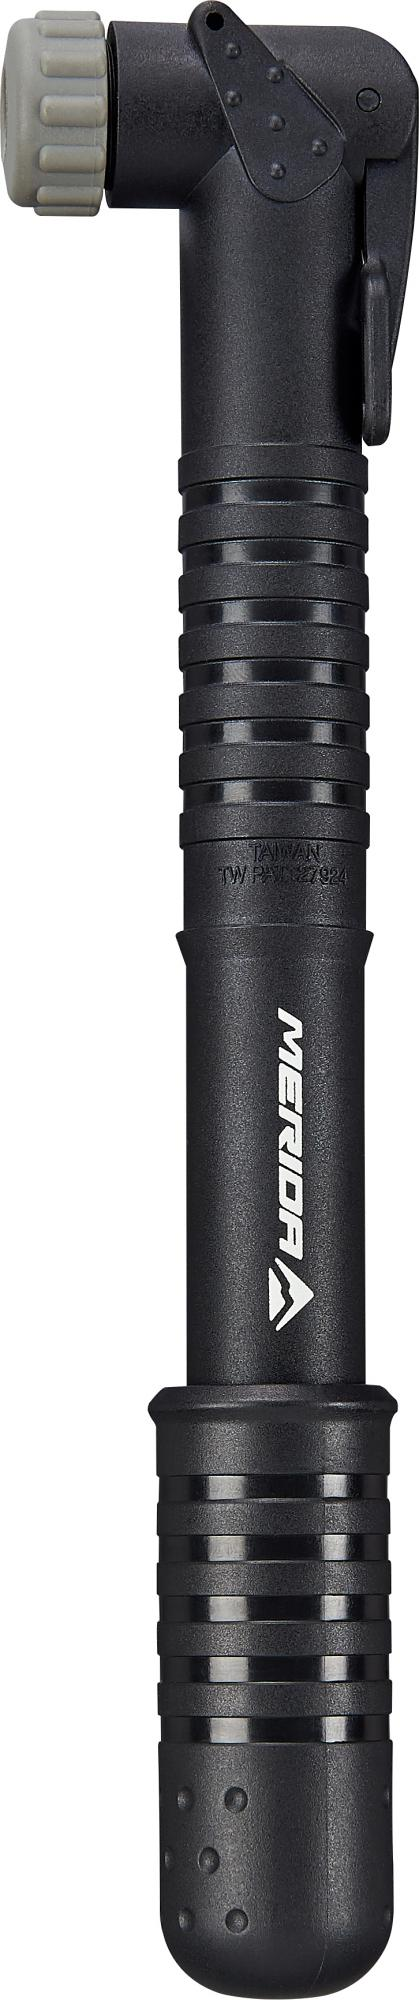 Насос-мини Merida Compact Telescopic Pump L=25,5cm (100psi-7bar) 120гр.